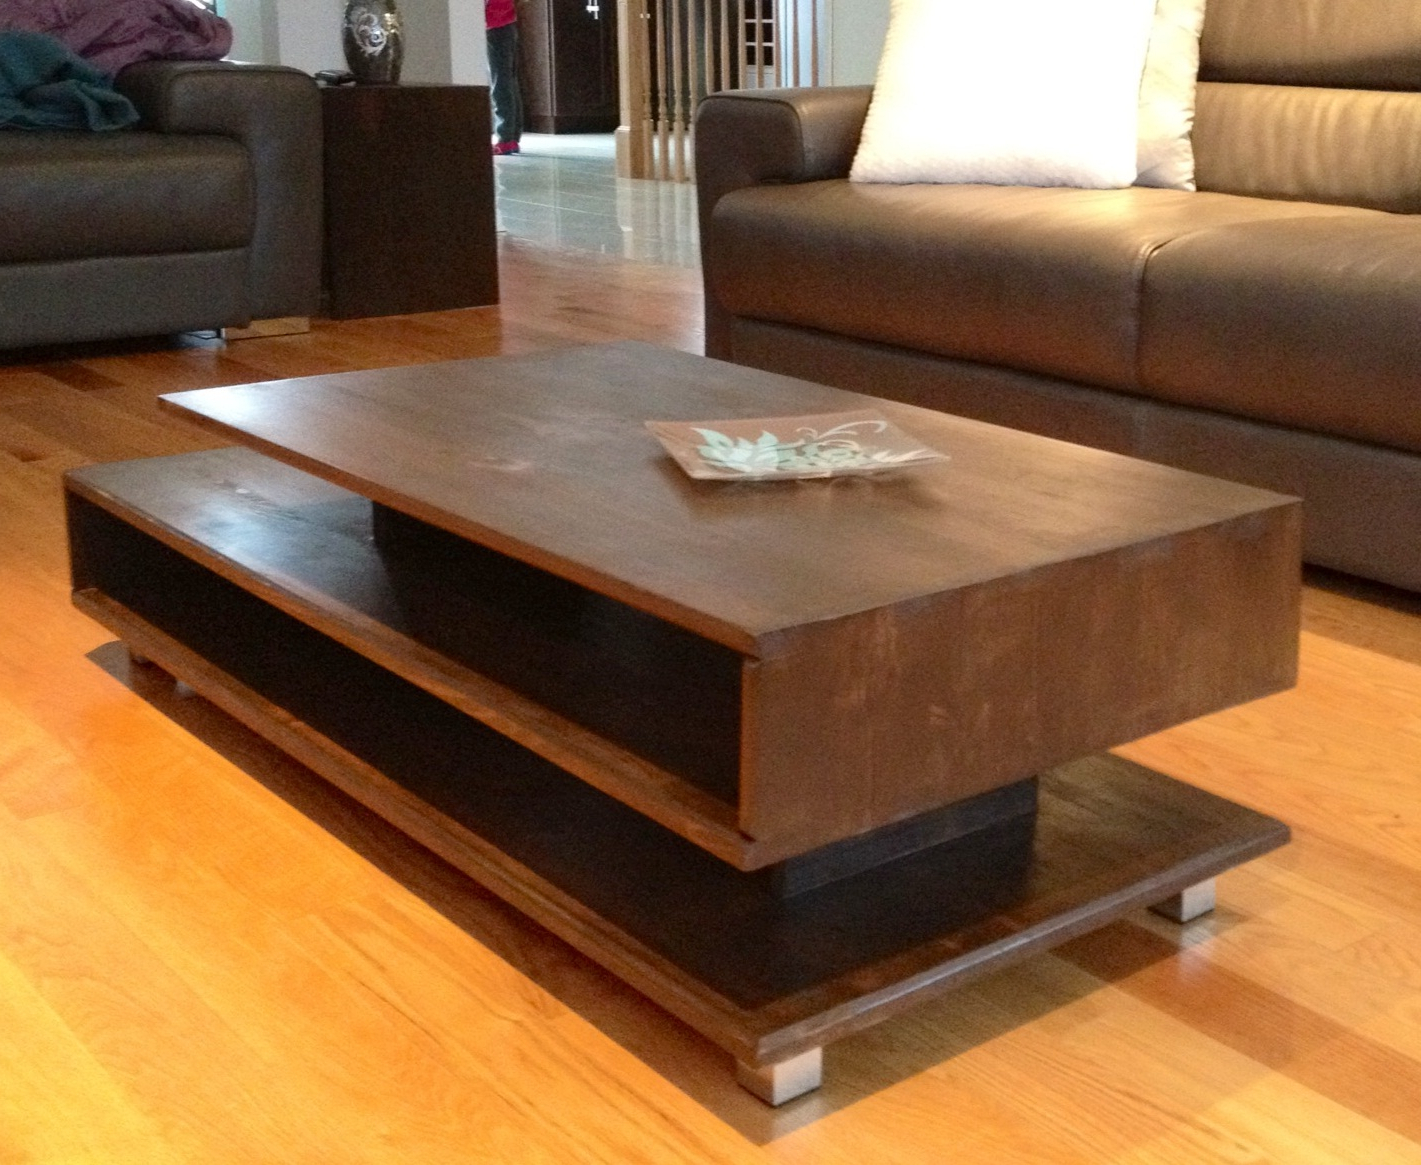 Favorite Modern Rustic Coffee Tables For Modern Rustic Coffee Table With Storage Space In Nice Living Room (Gallery 4 of 20)